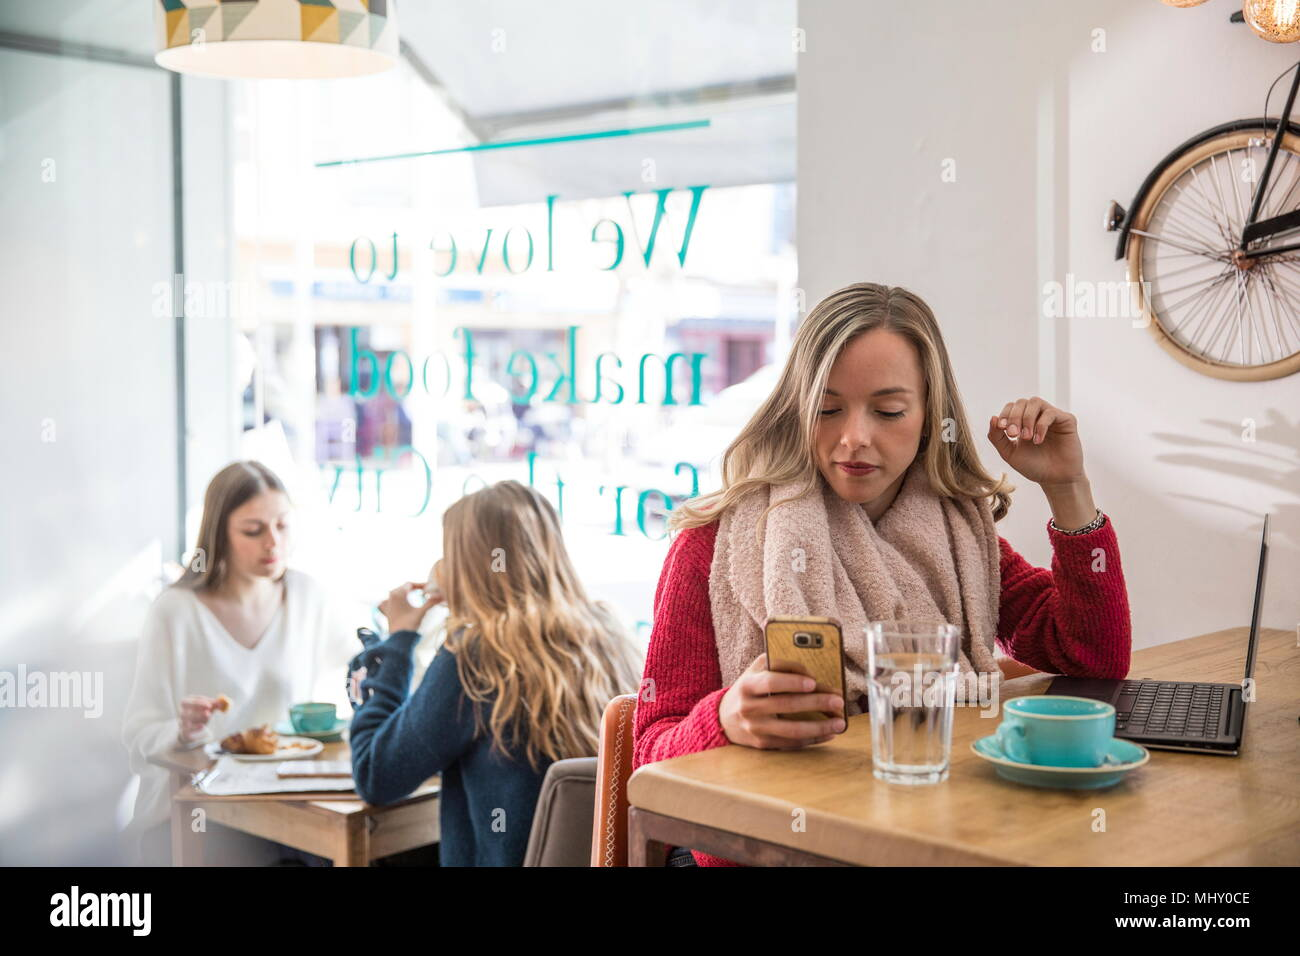 Woman sitting in cafe, looking at smartphone, laptop in front of her - Stock Image